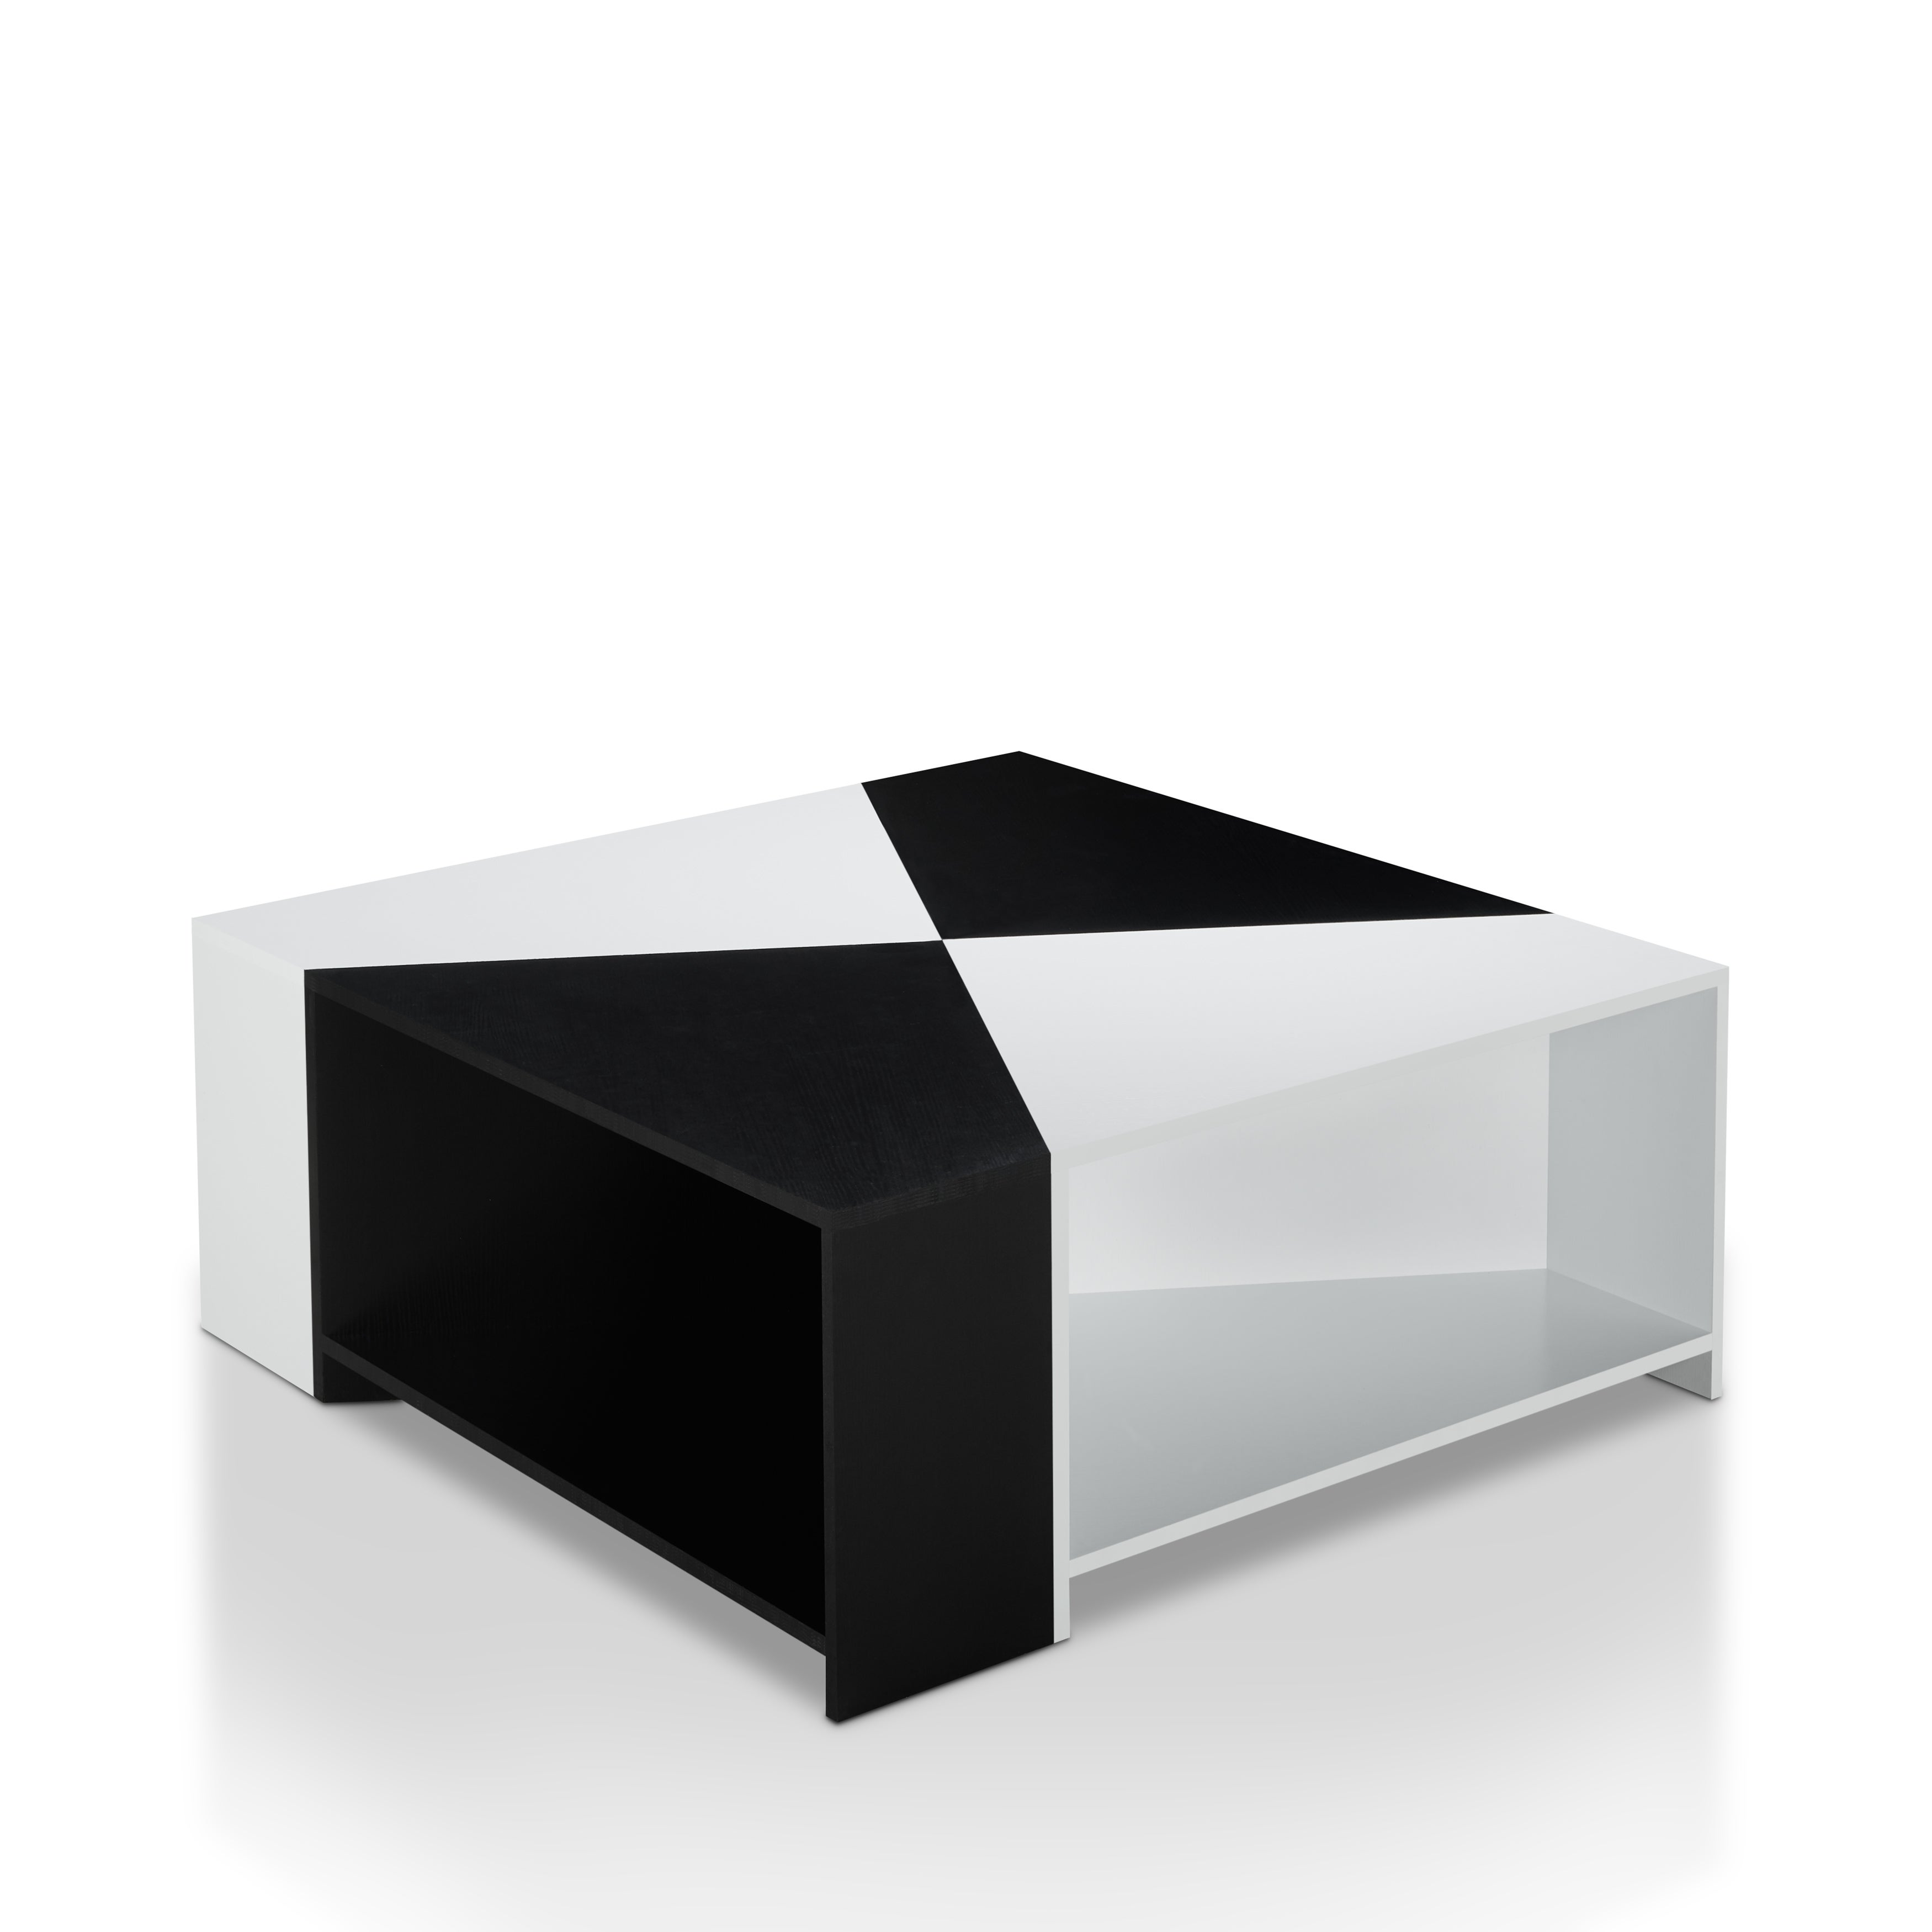 Furniture of America Clerington Modern Two tone Black White